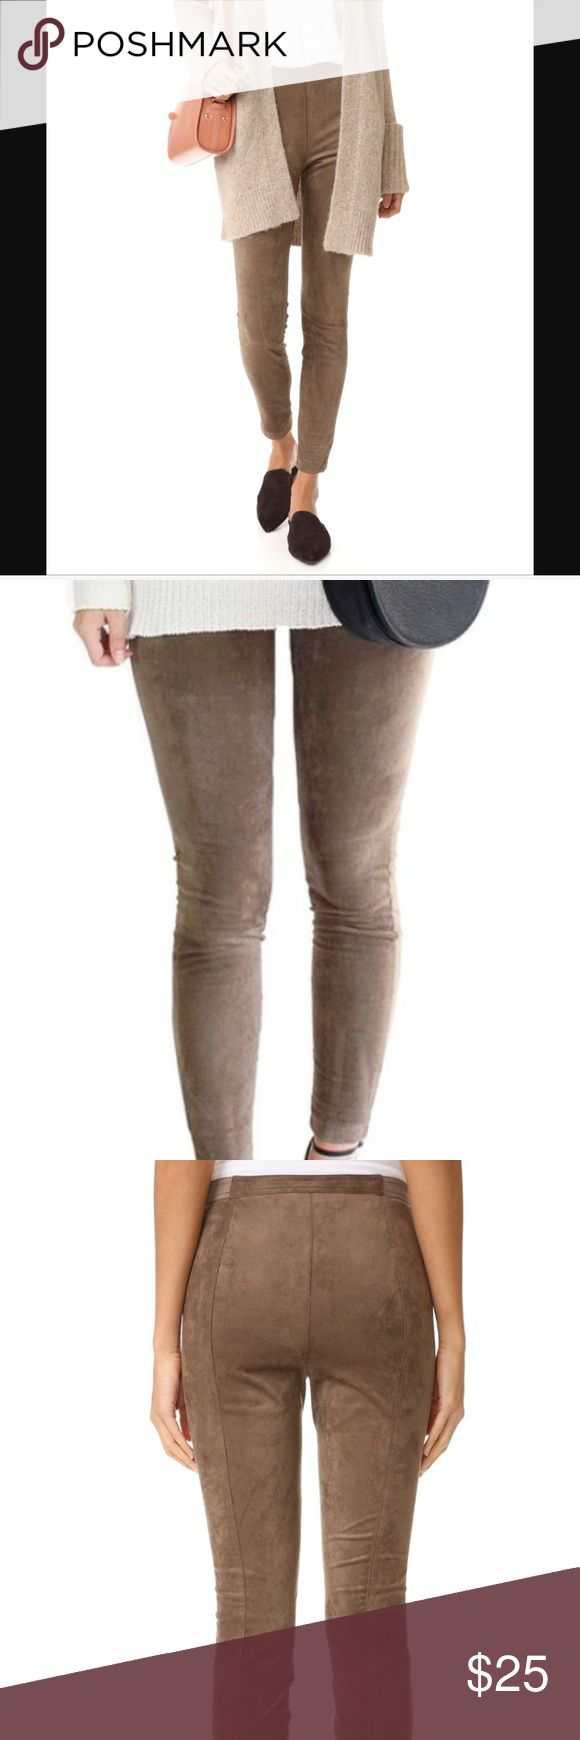 BB Dakota Leggings Fuax suede camel leggings are extremely comfortable and stylish! Only worn once BB Dakota Pants Leggings